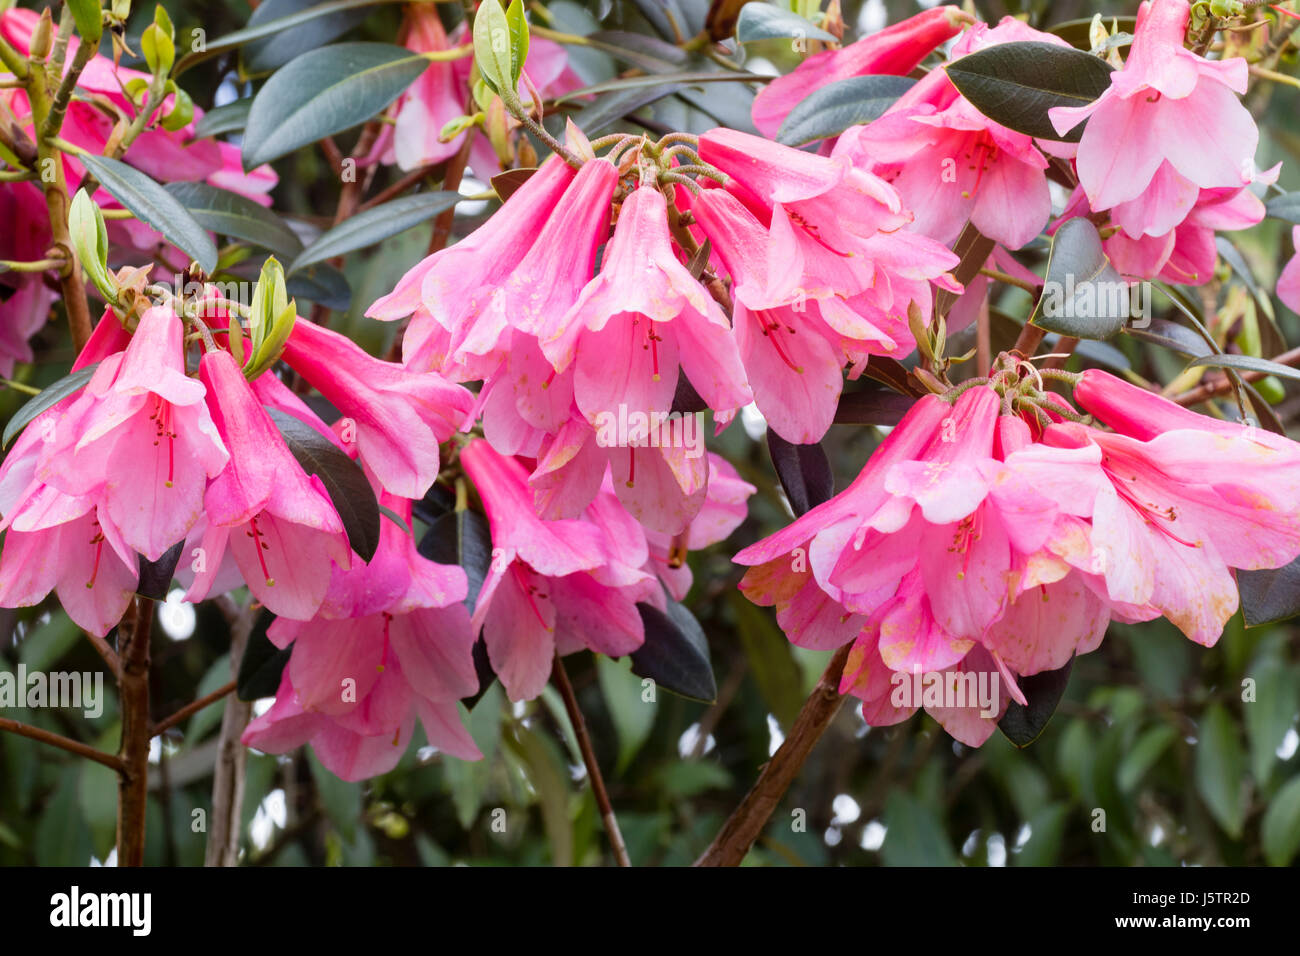 Pink Bell Flowers Stock Photos Pink Bell Flowers Stock Images Alamy